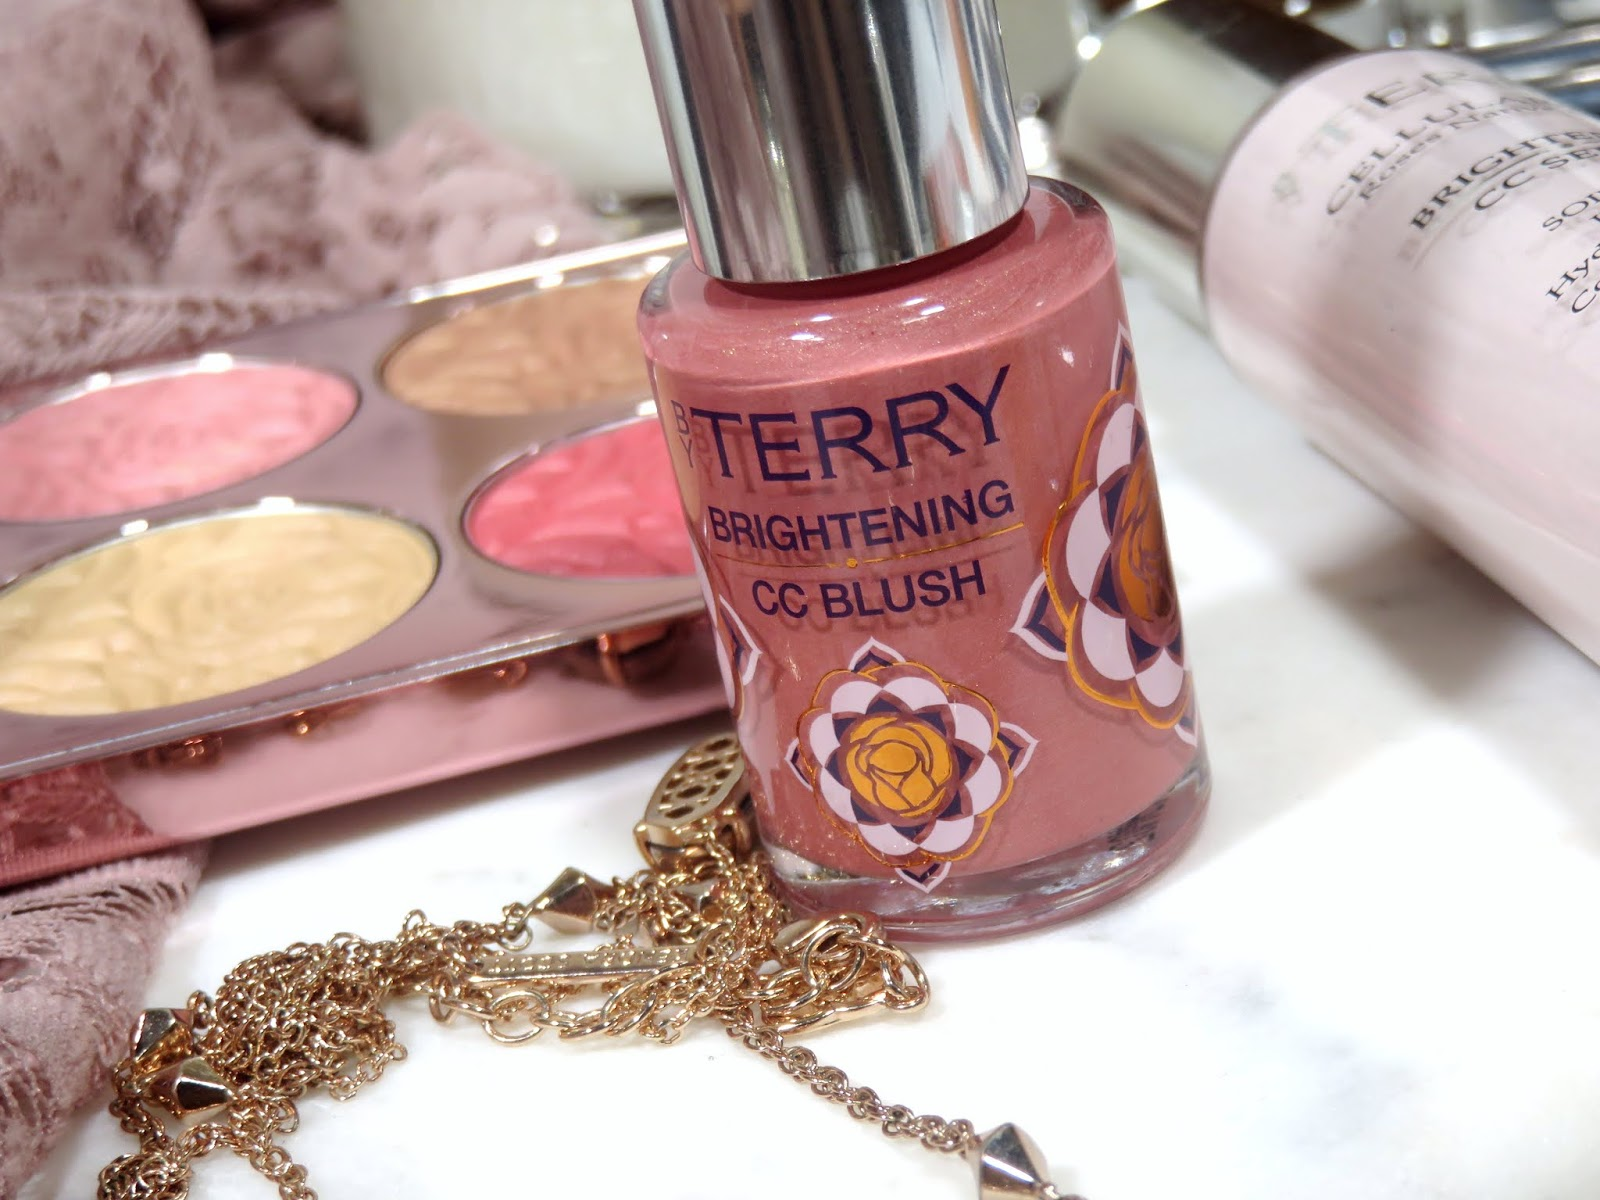 By Terry Brightening CC Blush Illuminating Blusher Review and Swatches